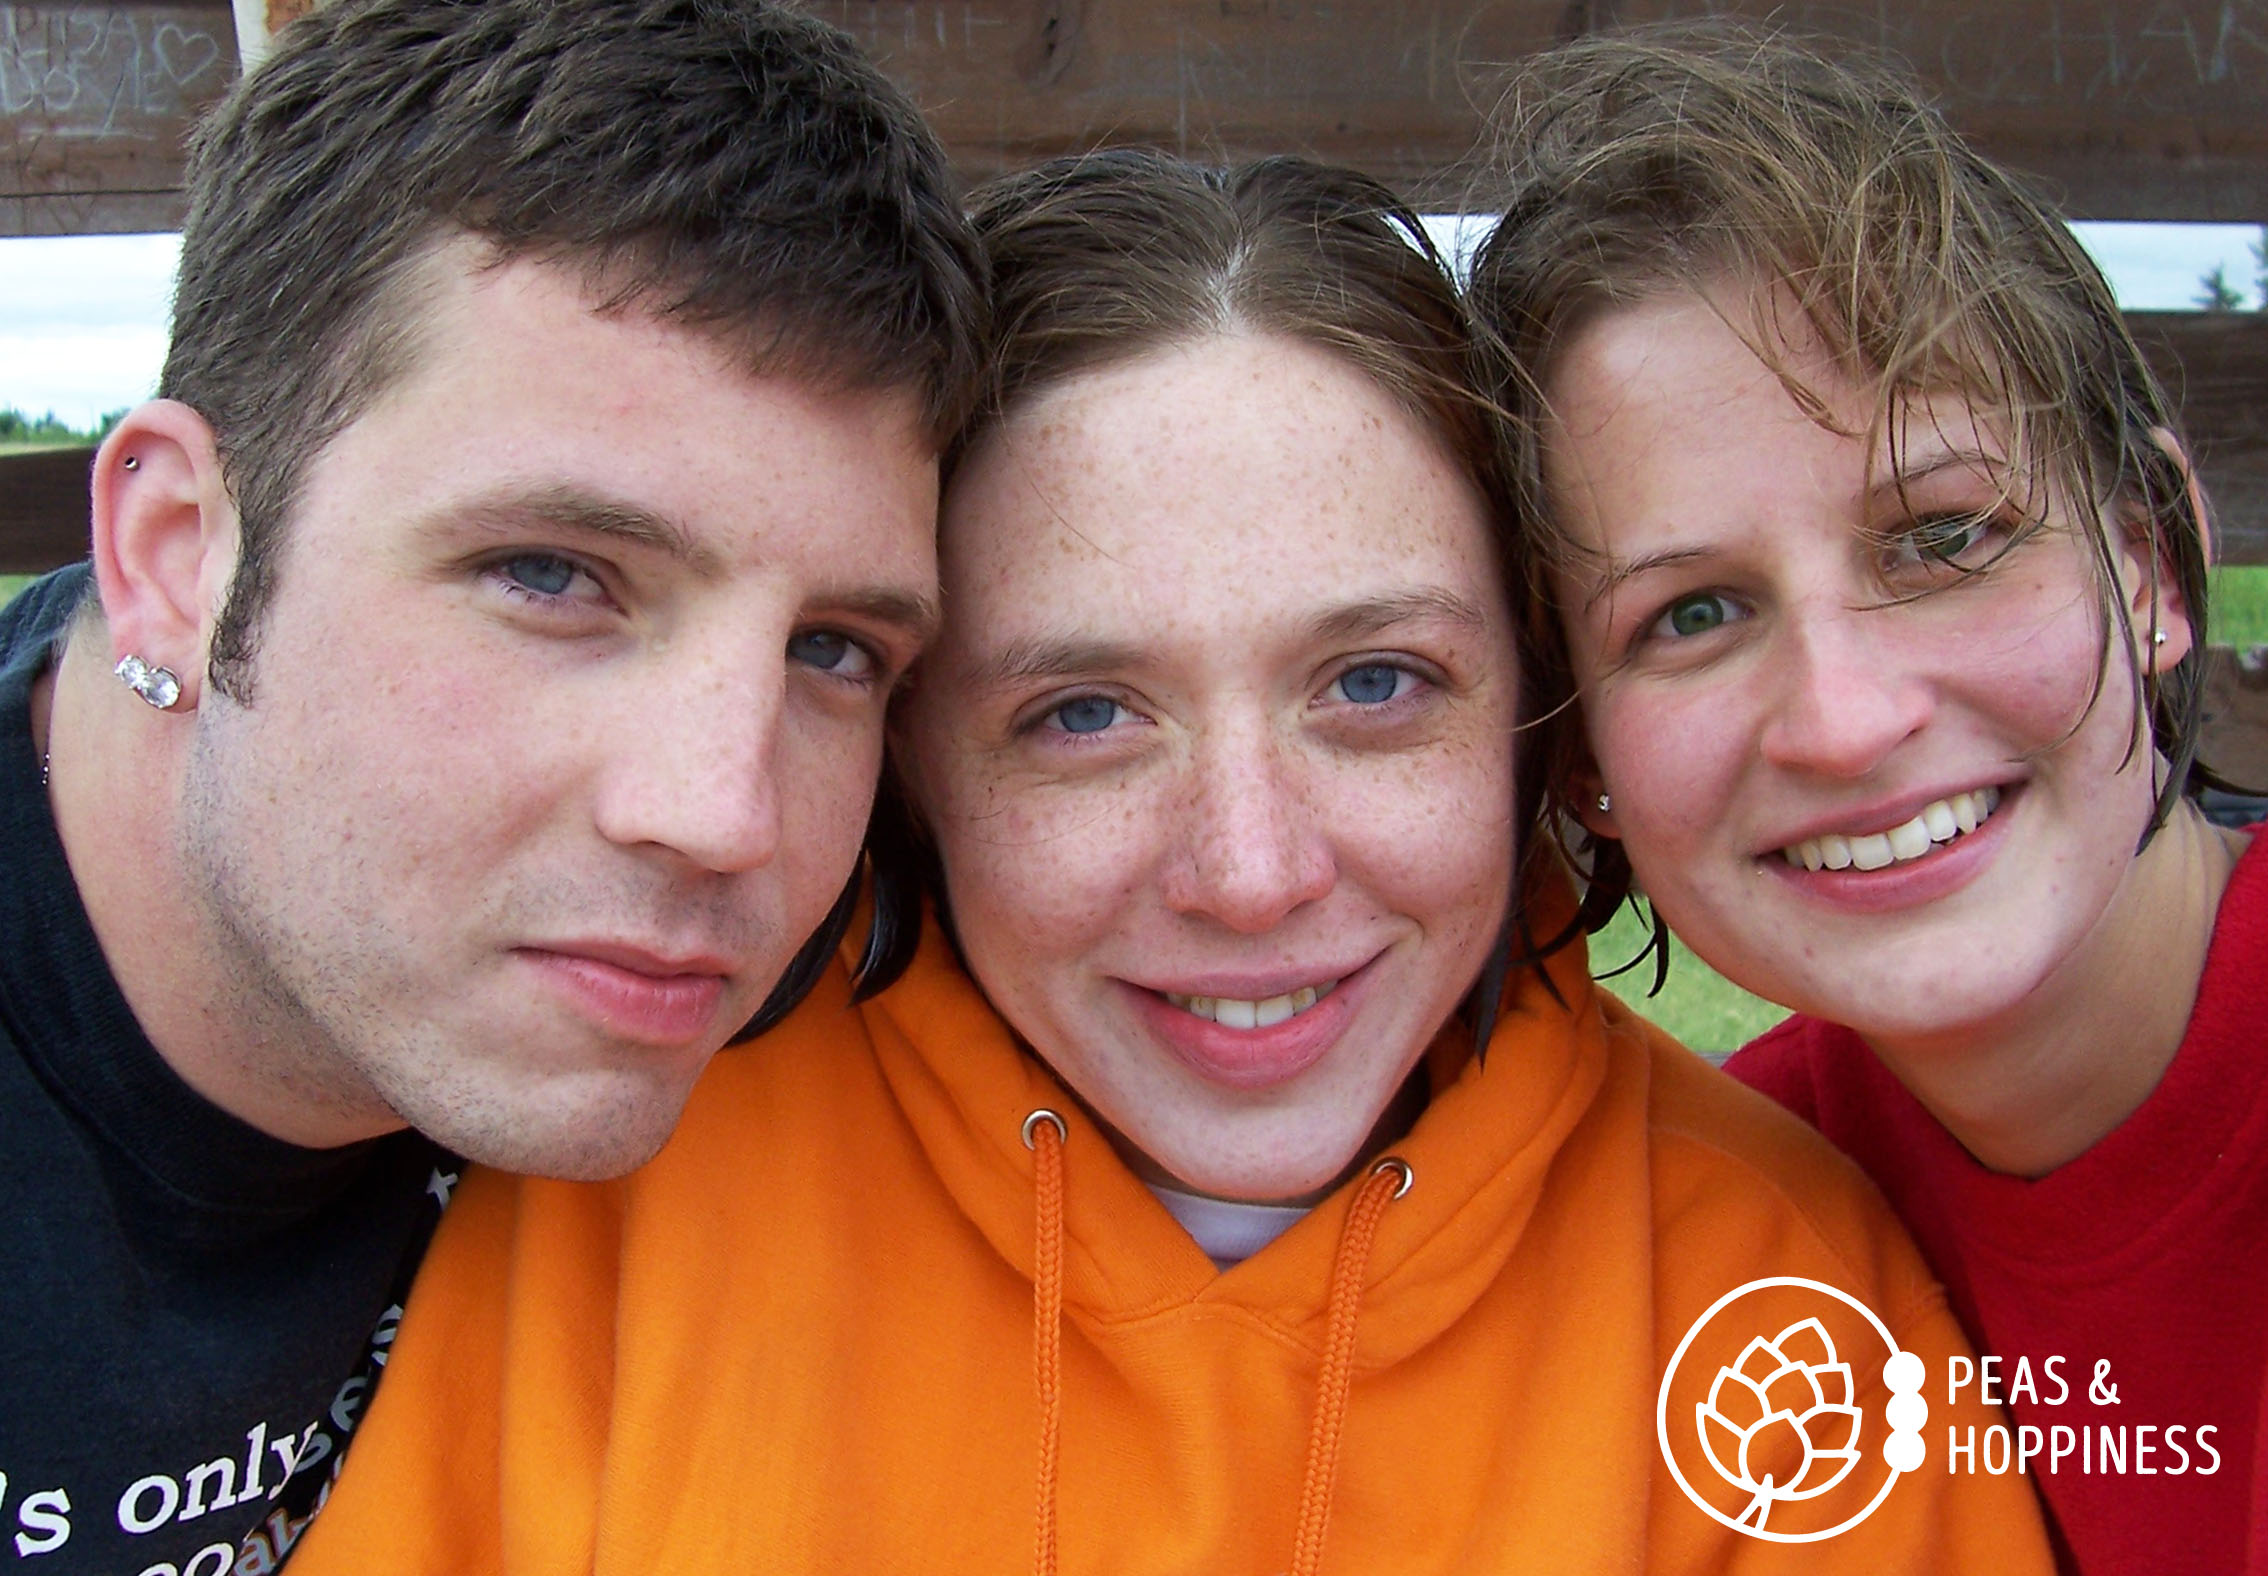 Zach, Brandi, and I spending a rather cold day at the lake on a day off together.